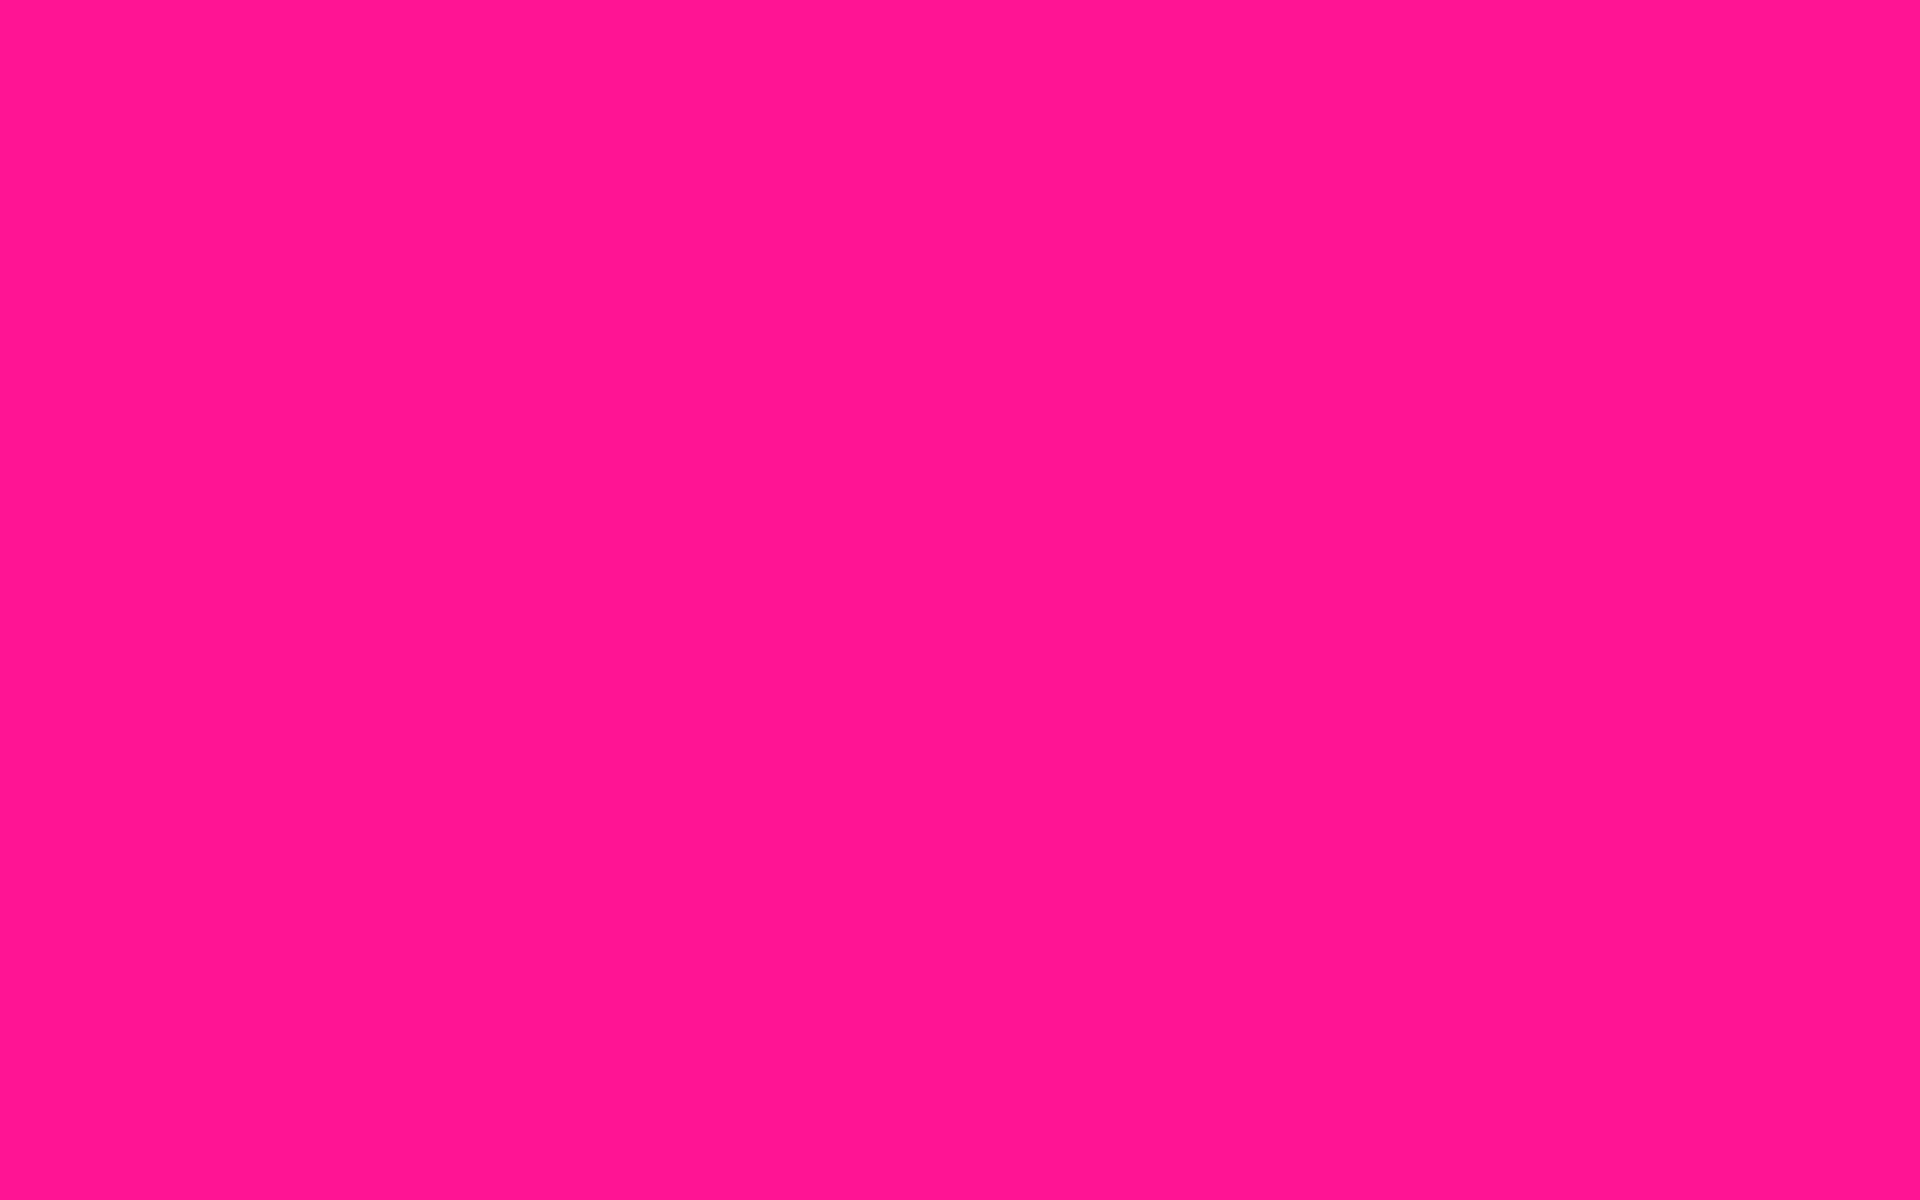 1920x1200 Deep Pink Solid Color Background